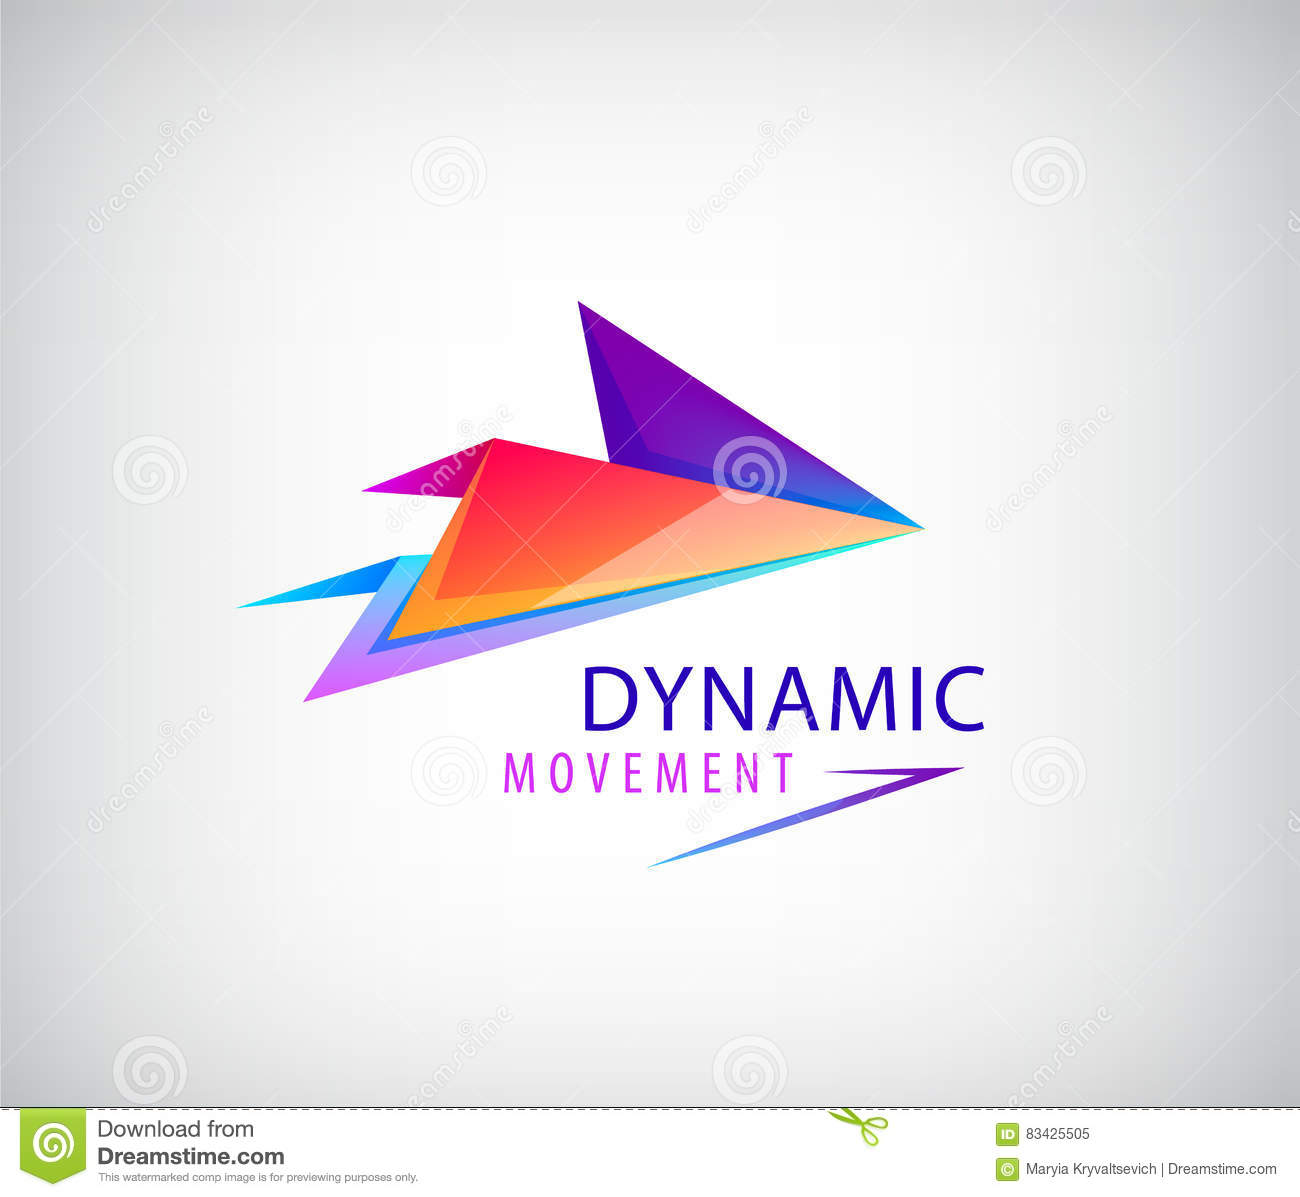 Abstract business logo icon design template arrow origami dynamic abstract business logo icon design template arrow origami dynamic sign jeuxipadfo Gallery